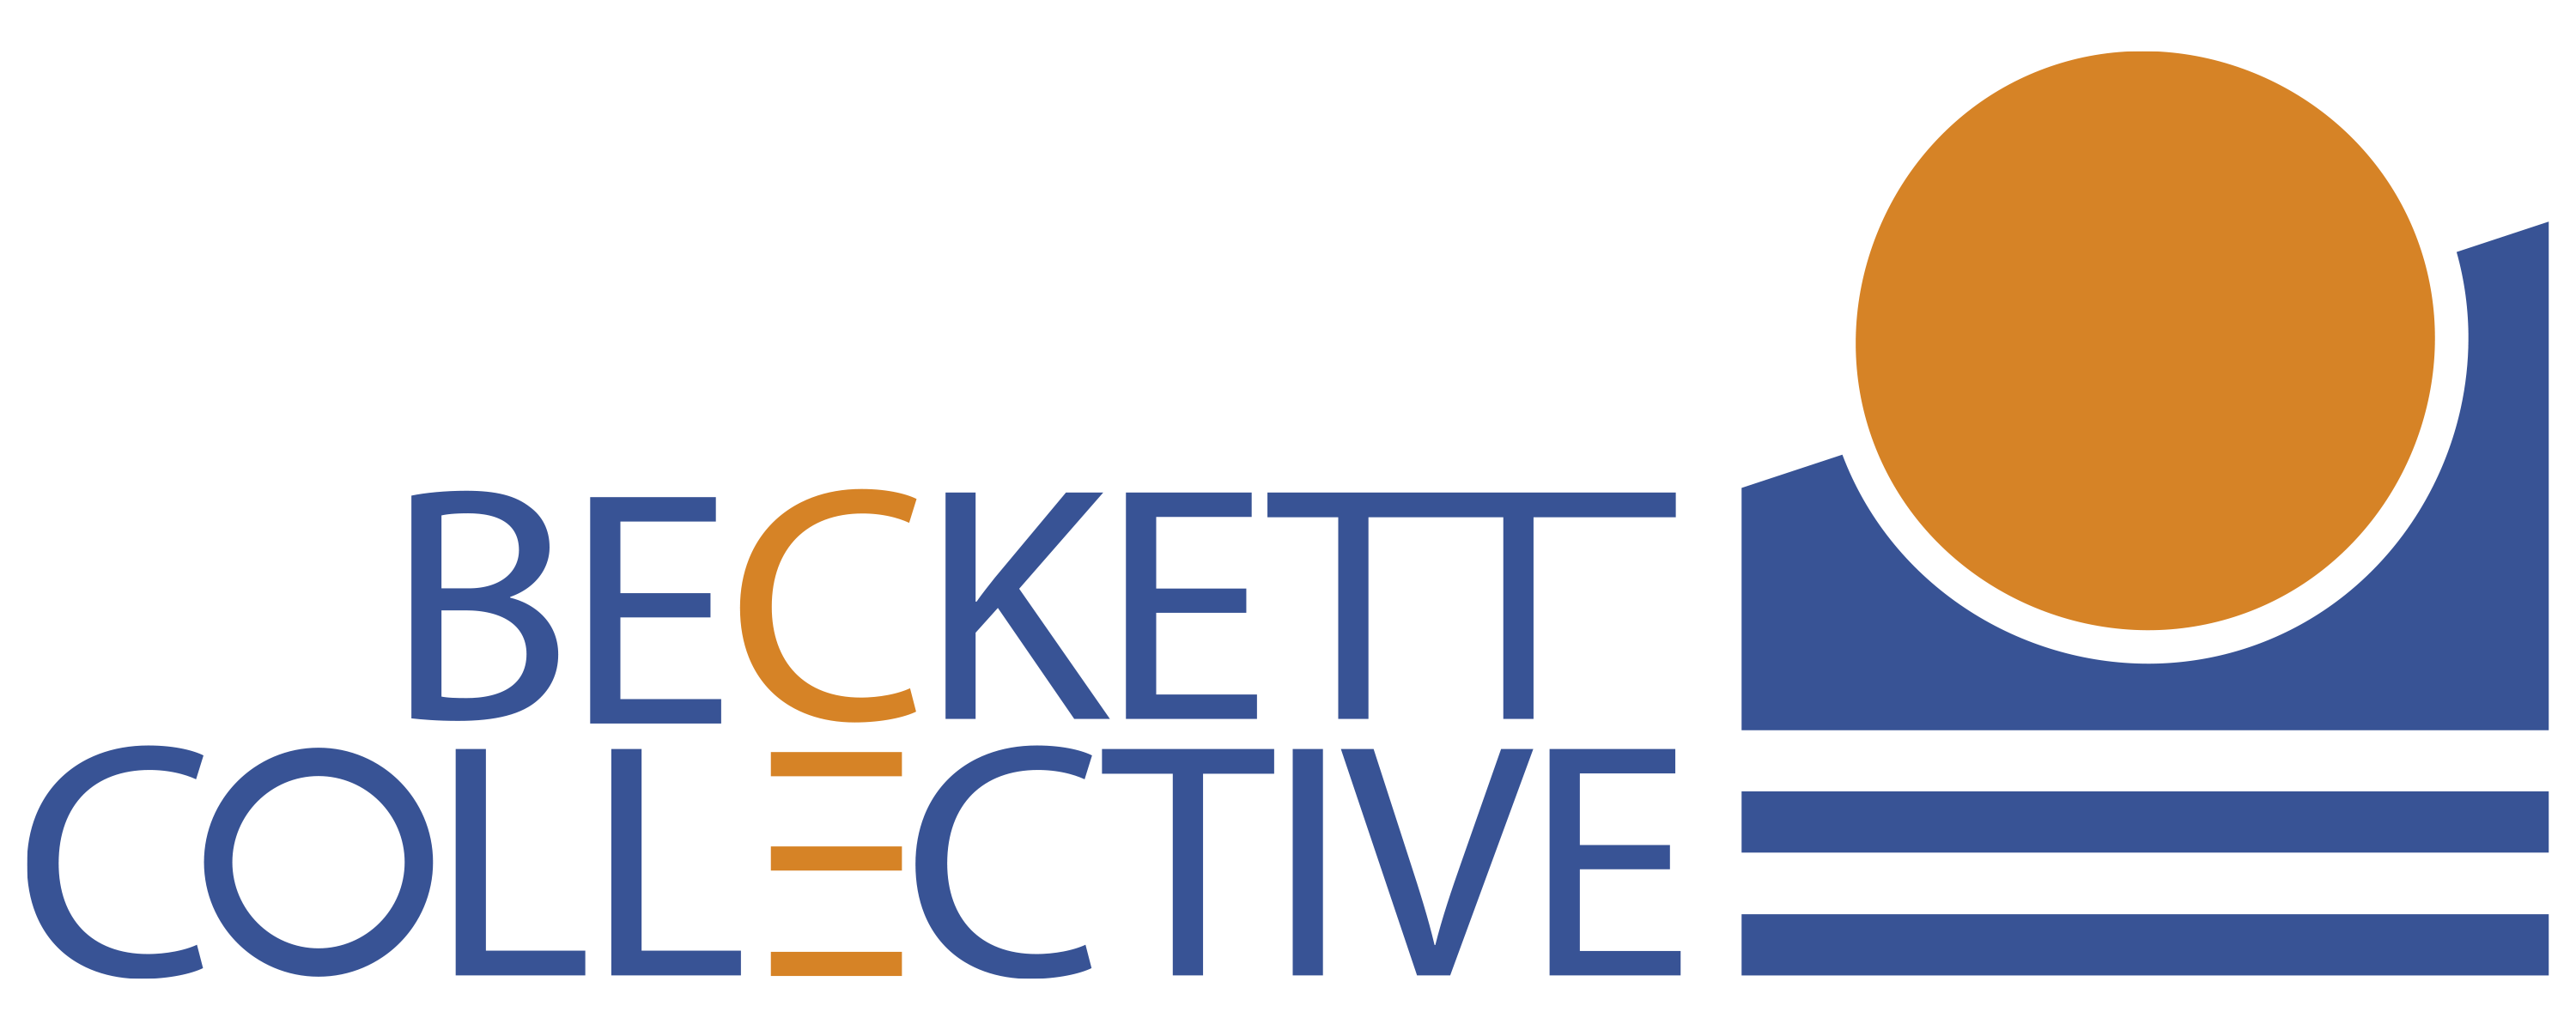 Beckett Collective